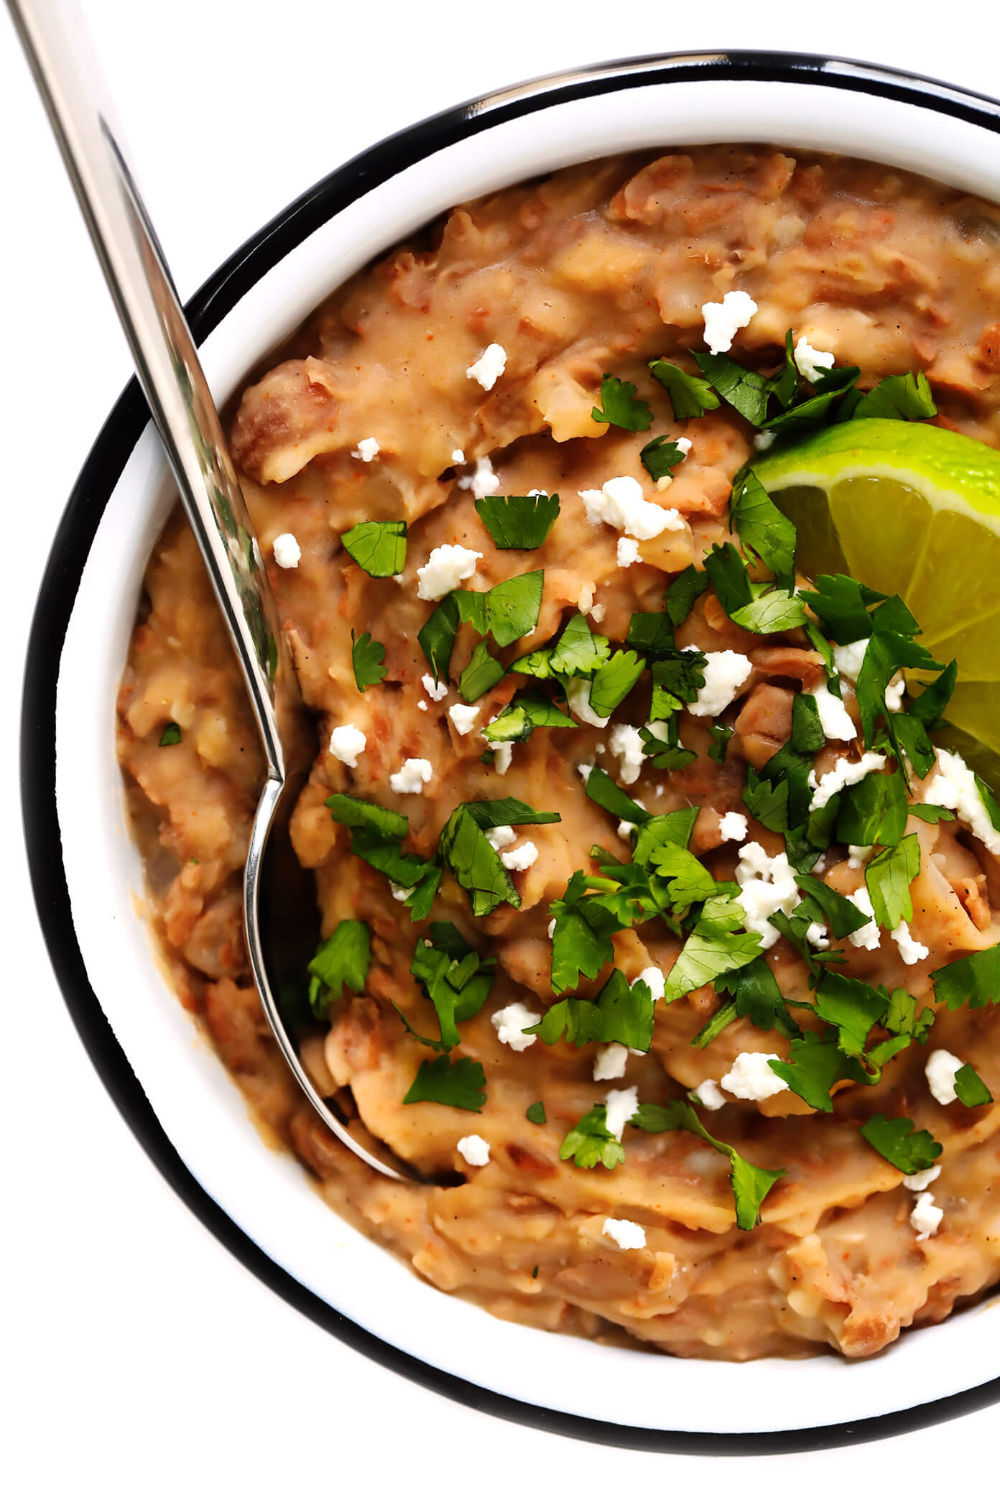 This homemade refried beans recipe is easy to make in about 20 minutes with vegetarian ingredients you can feel great about! It's the perfect easy Mexican side dish, or can be added to tacos, burritos, enchiladas and more. Or just serve with tortilla chips as an easy dip! | gimmesomeoven.com #refriedbeans #mexican #dip #side #glutenfree #vegetarian #vegan #healthy #cincodemayo